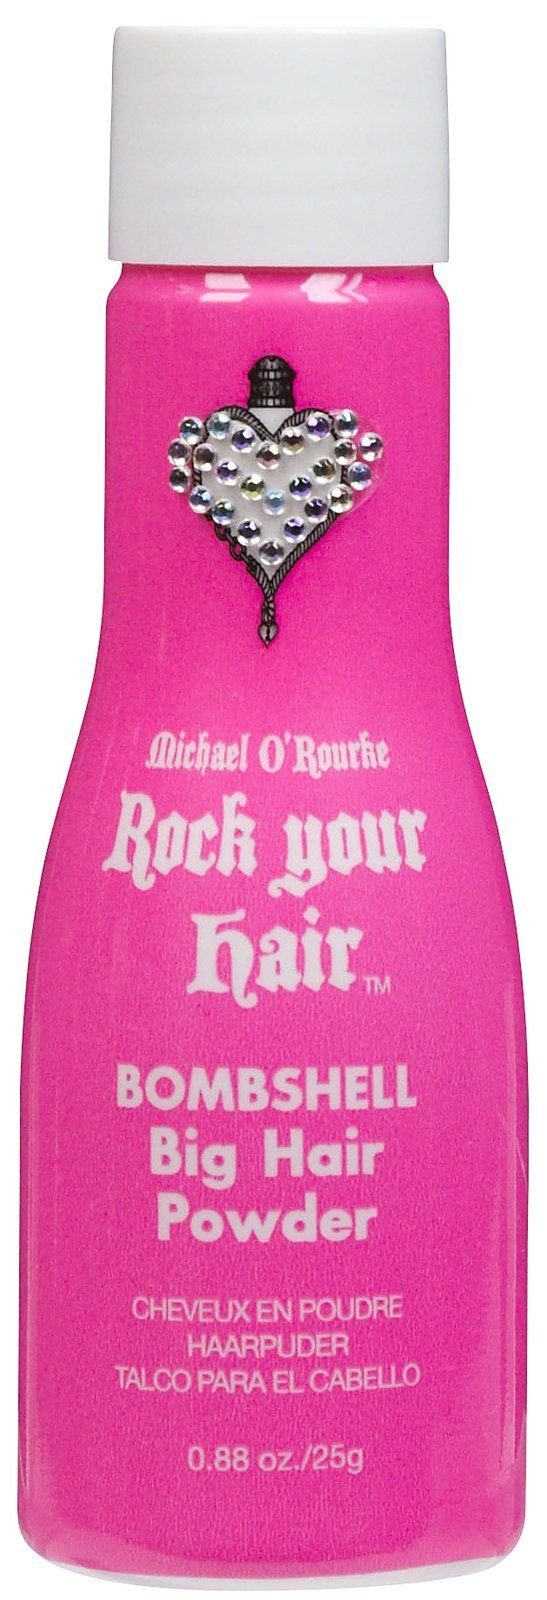 Rock Your Hair Bombshell Big Hair Powder...AWESOME STUFF!